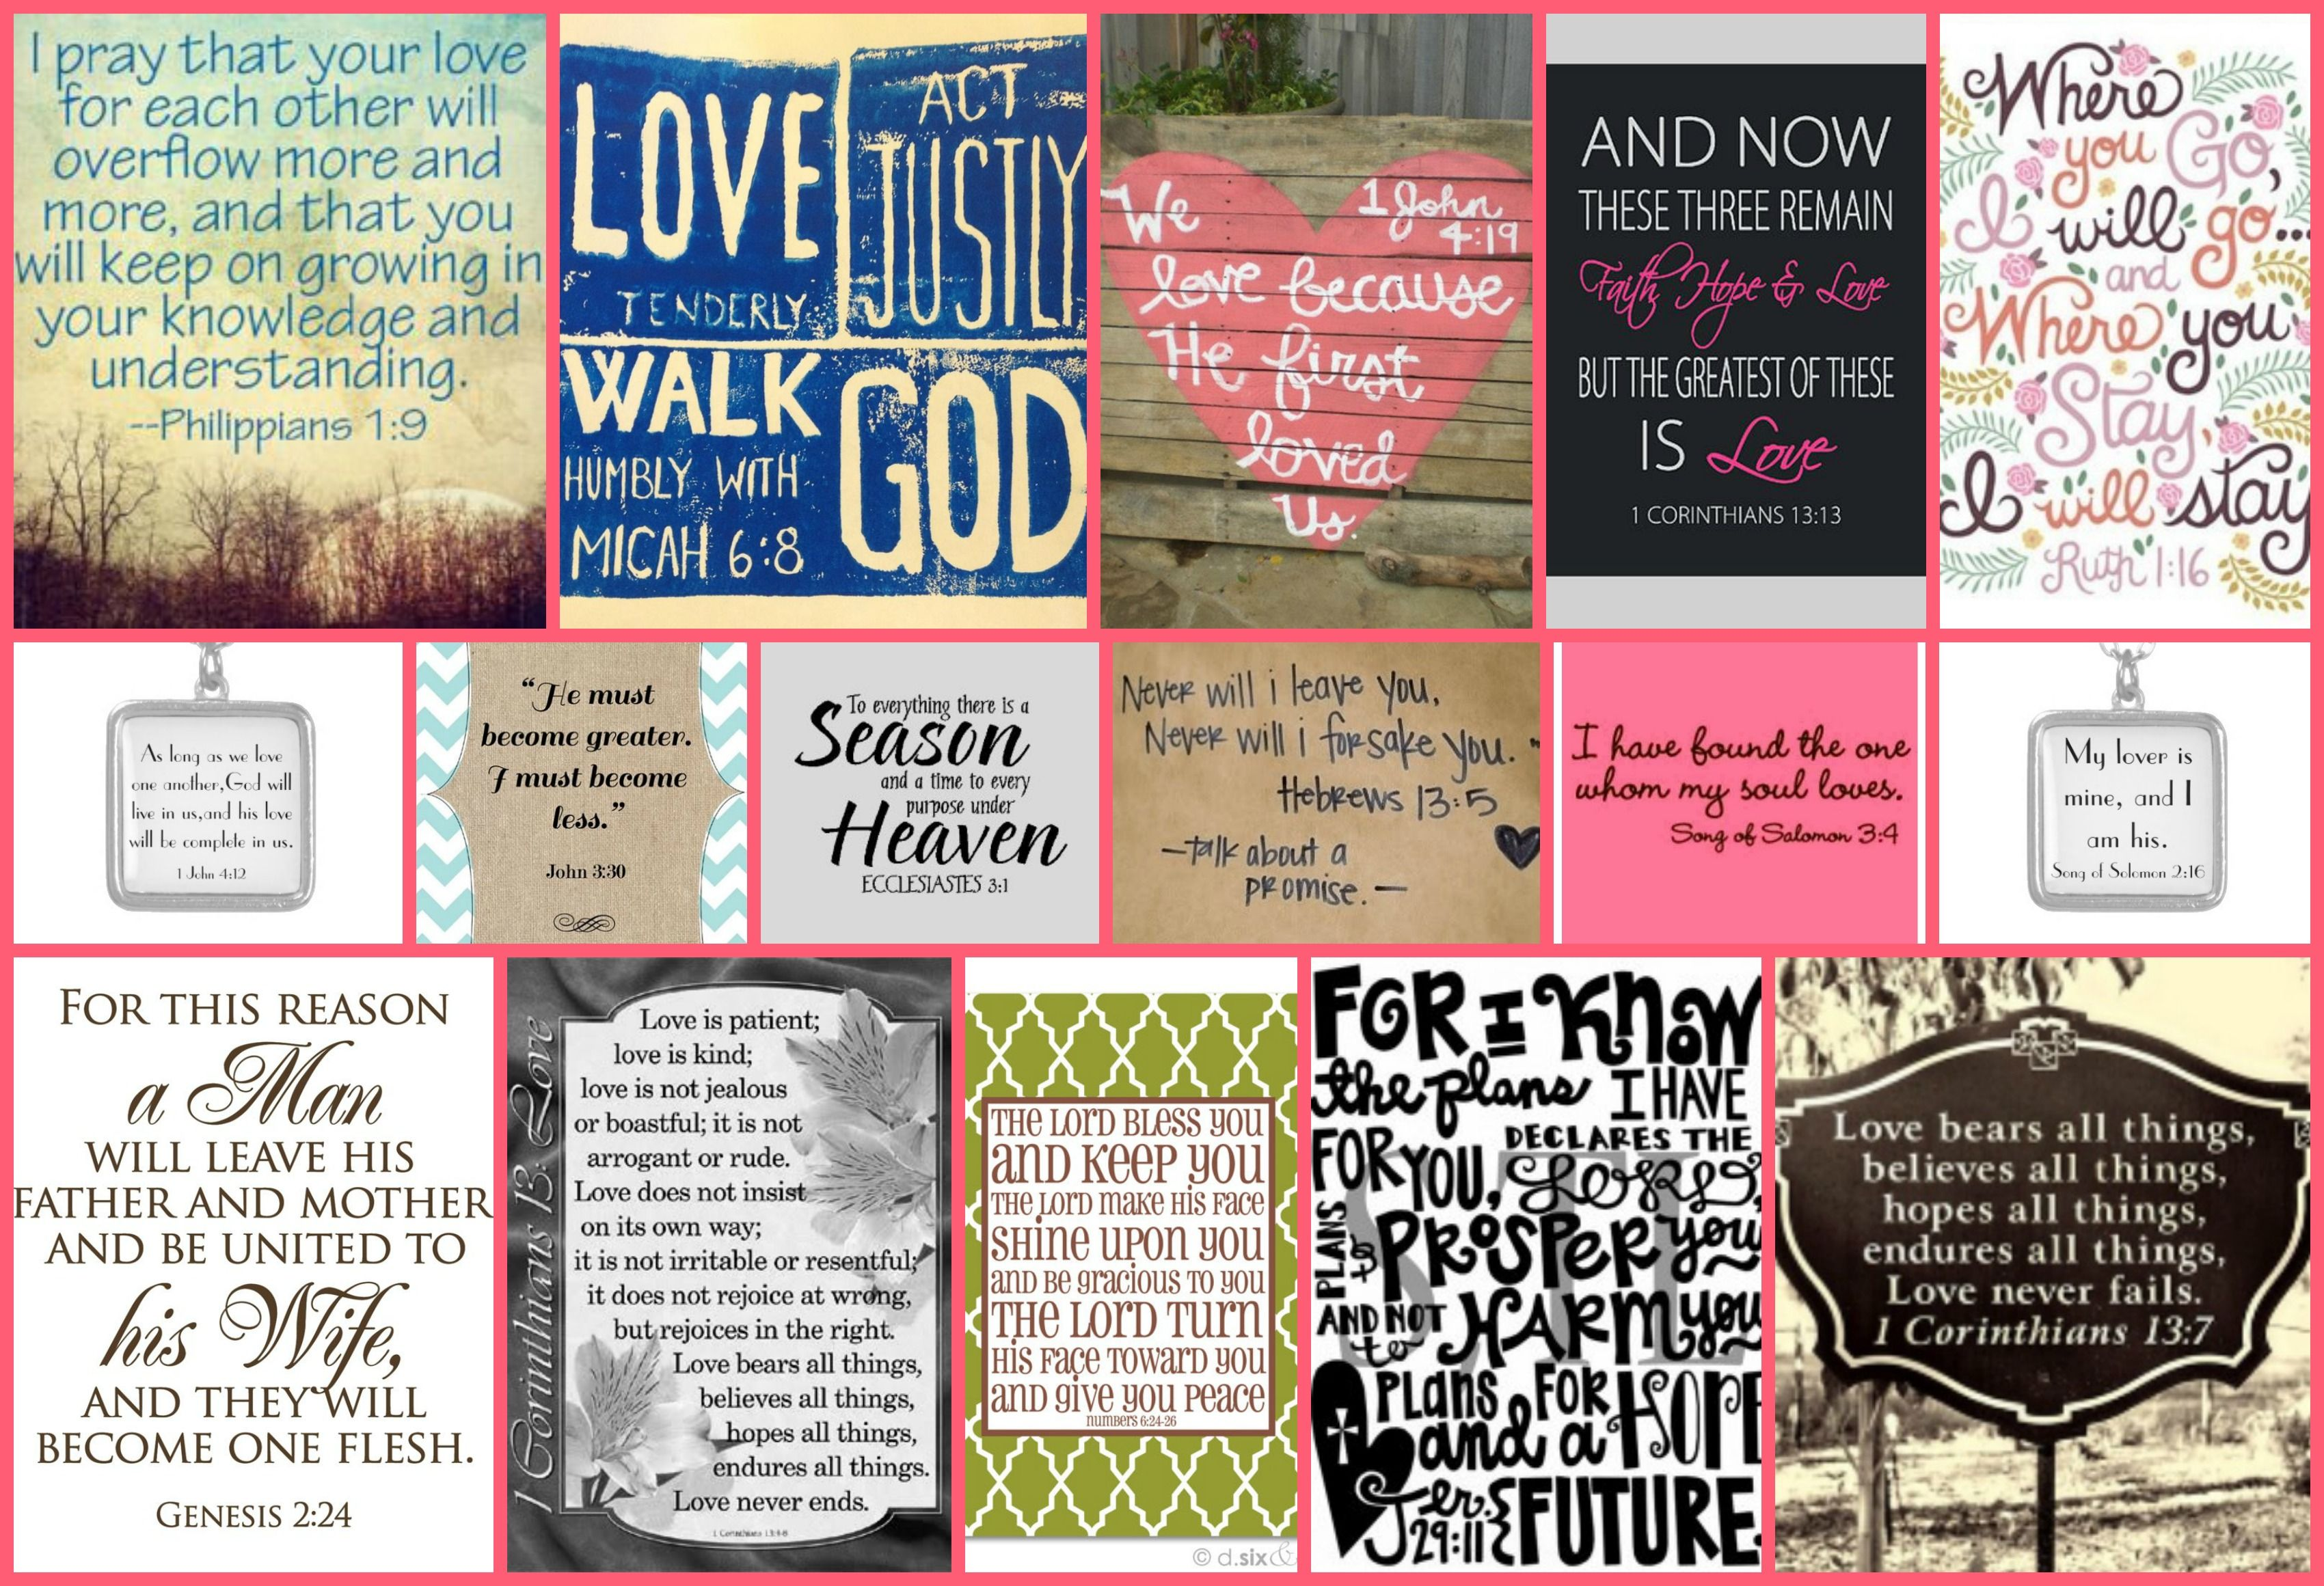 Best Bible Verse For Wedding Invitation: Here Are 16 Popular Bible Verses That Are Used At Weddings